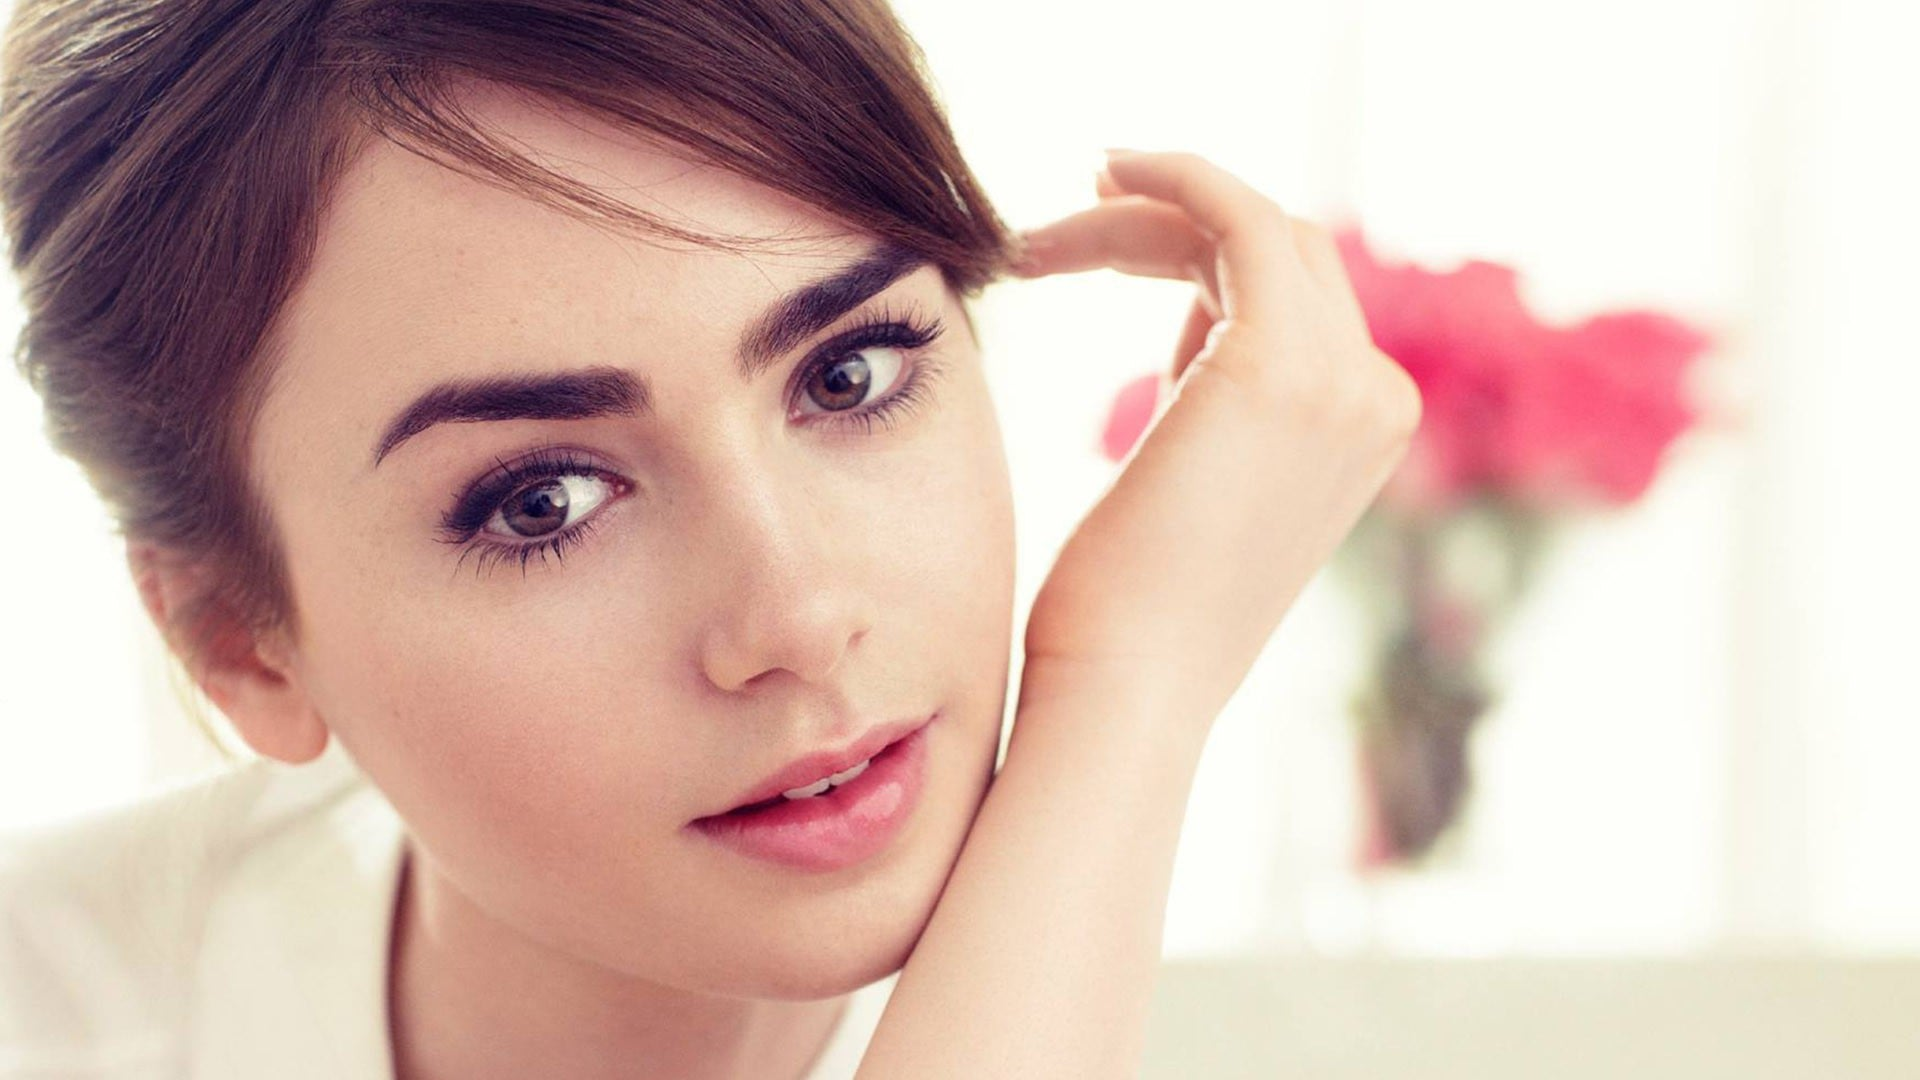 Lily Collins face wallpaper pictures